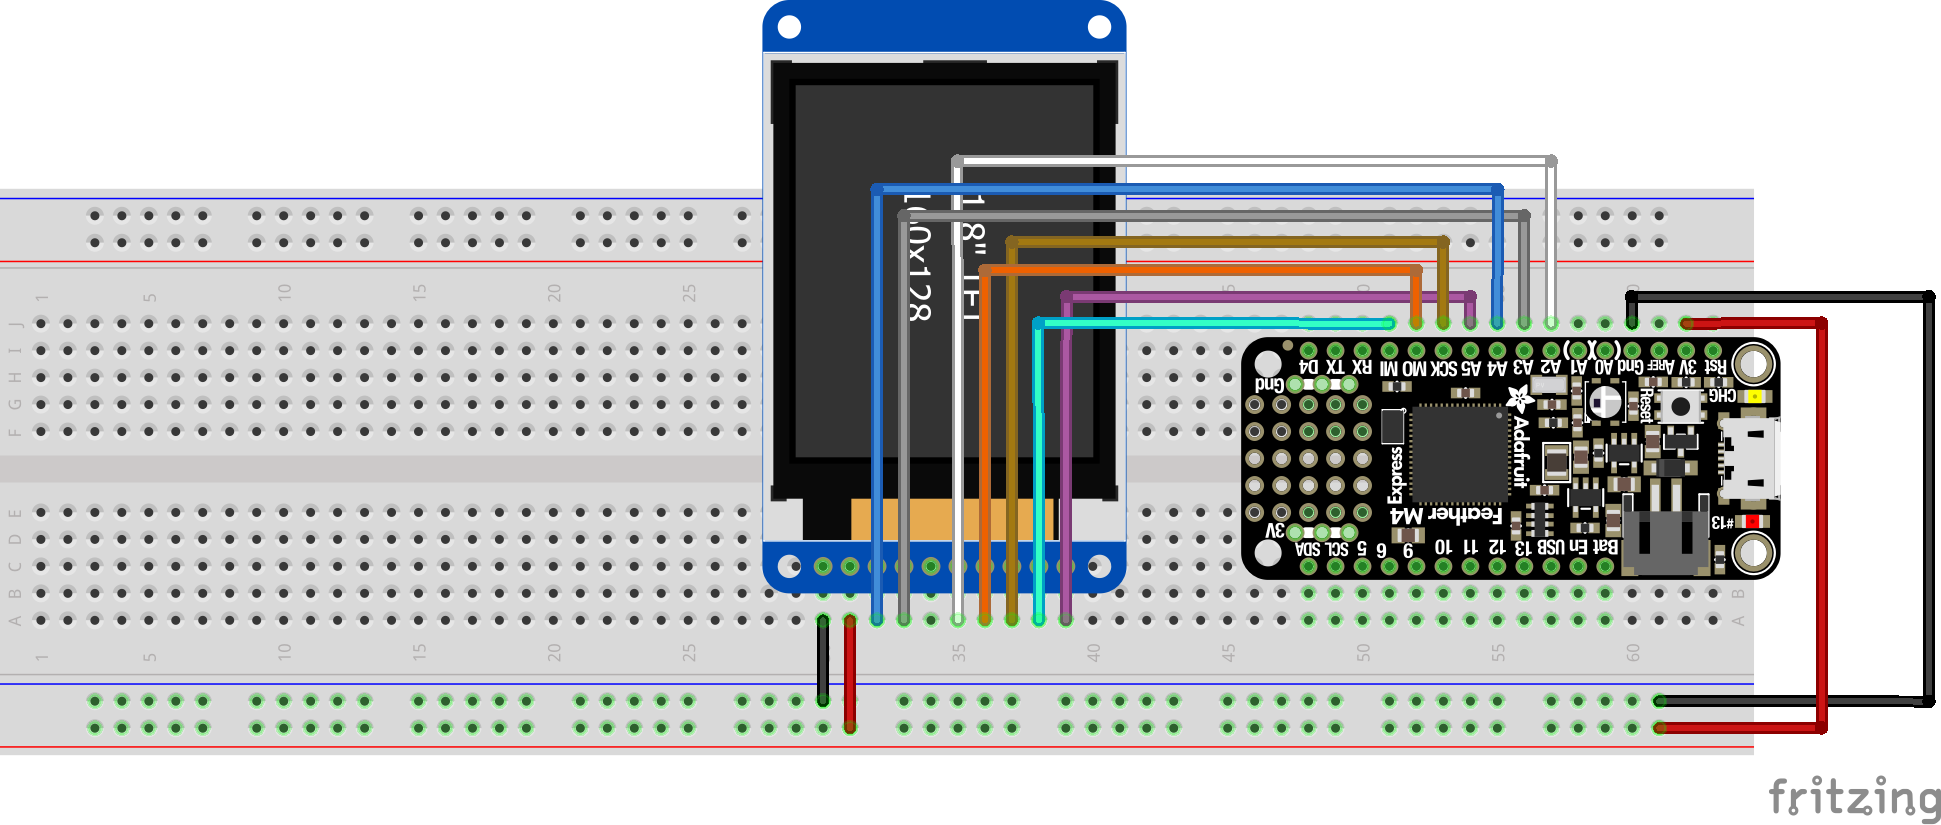 components_makecode-arcade-feather-m4-express-no-button_bb.png